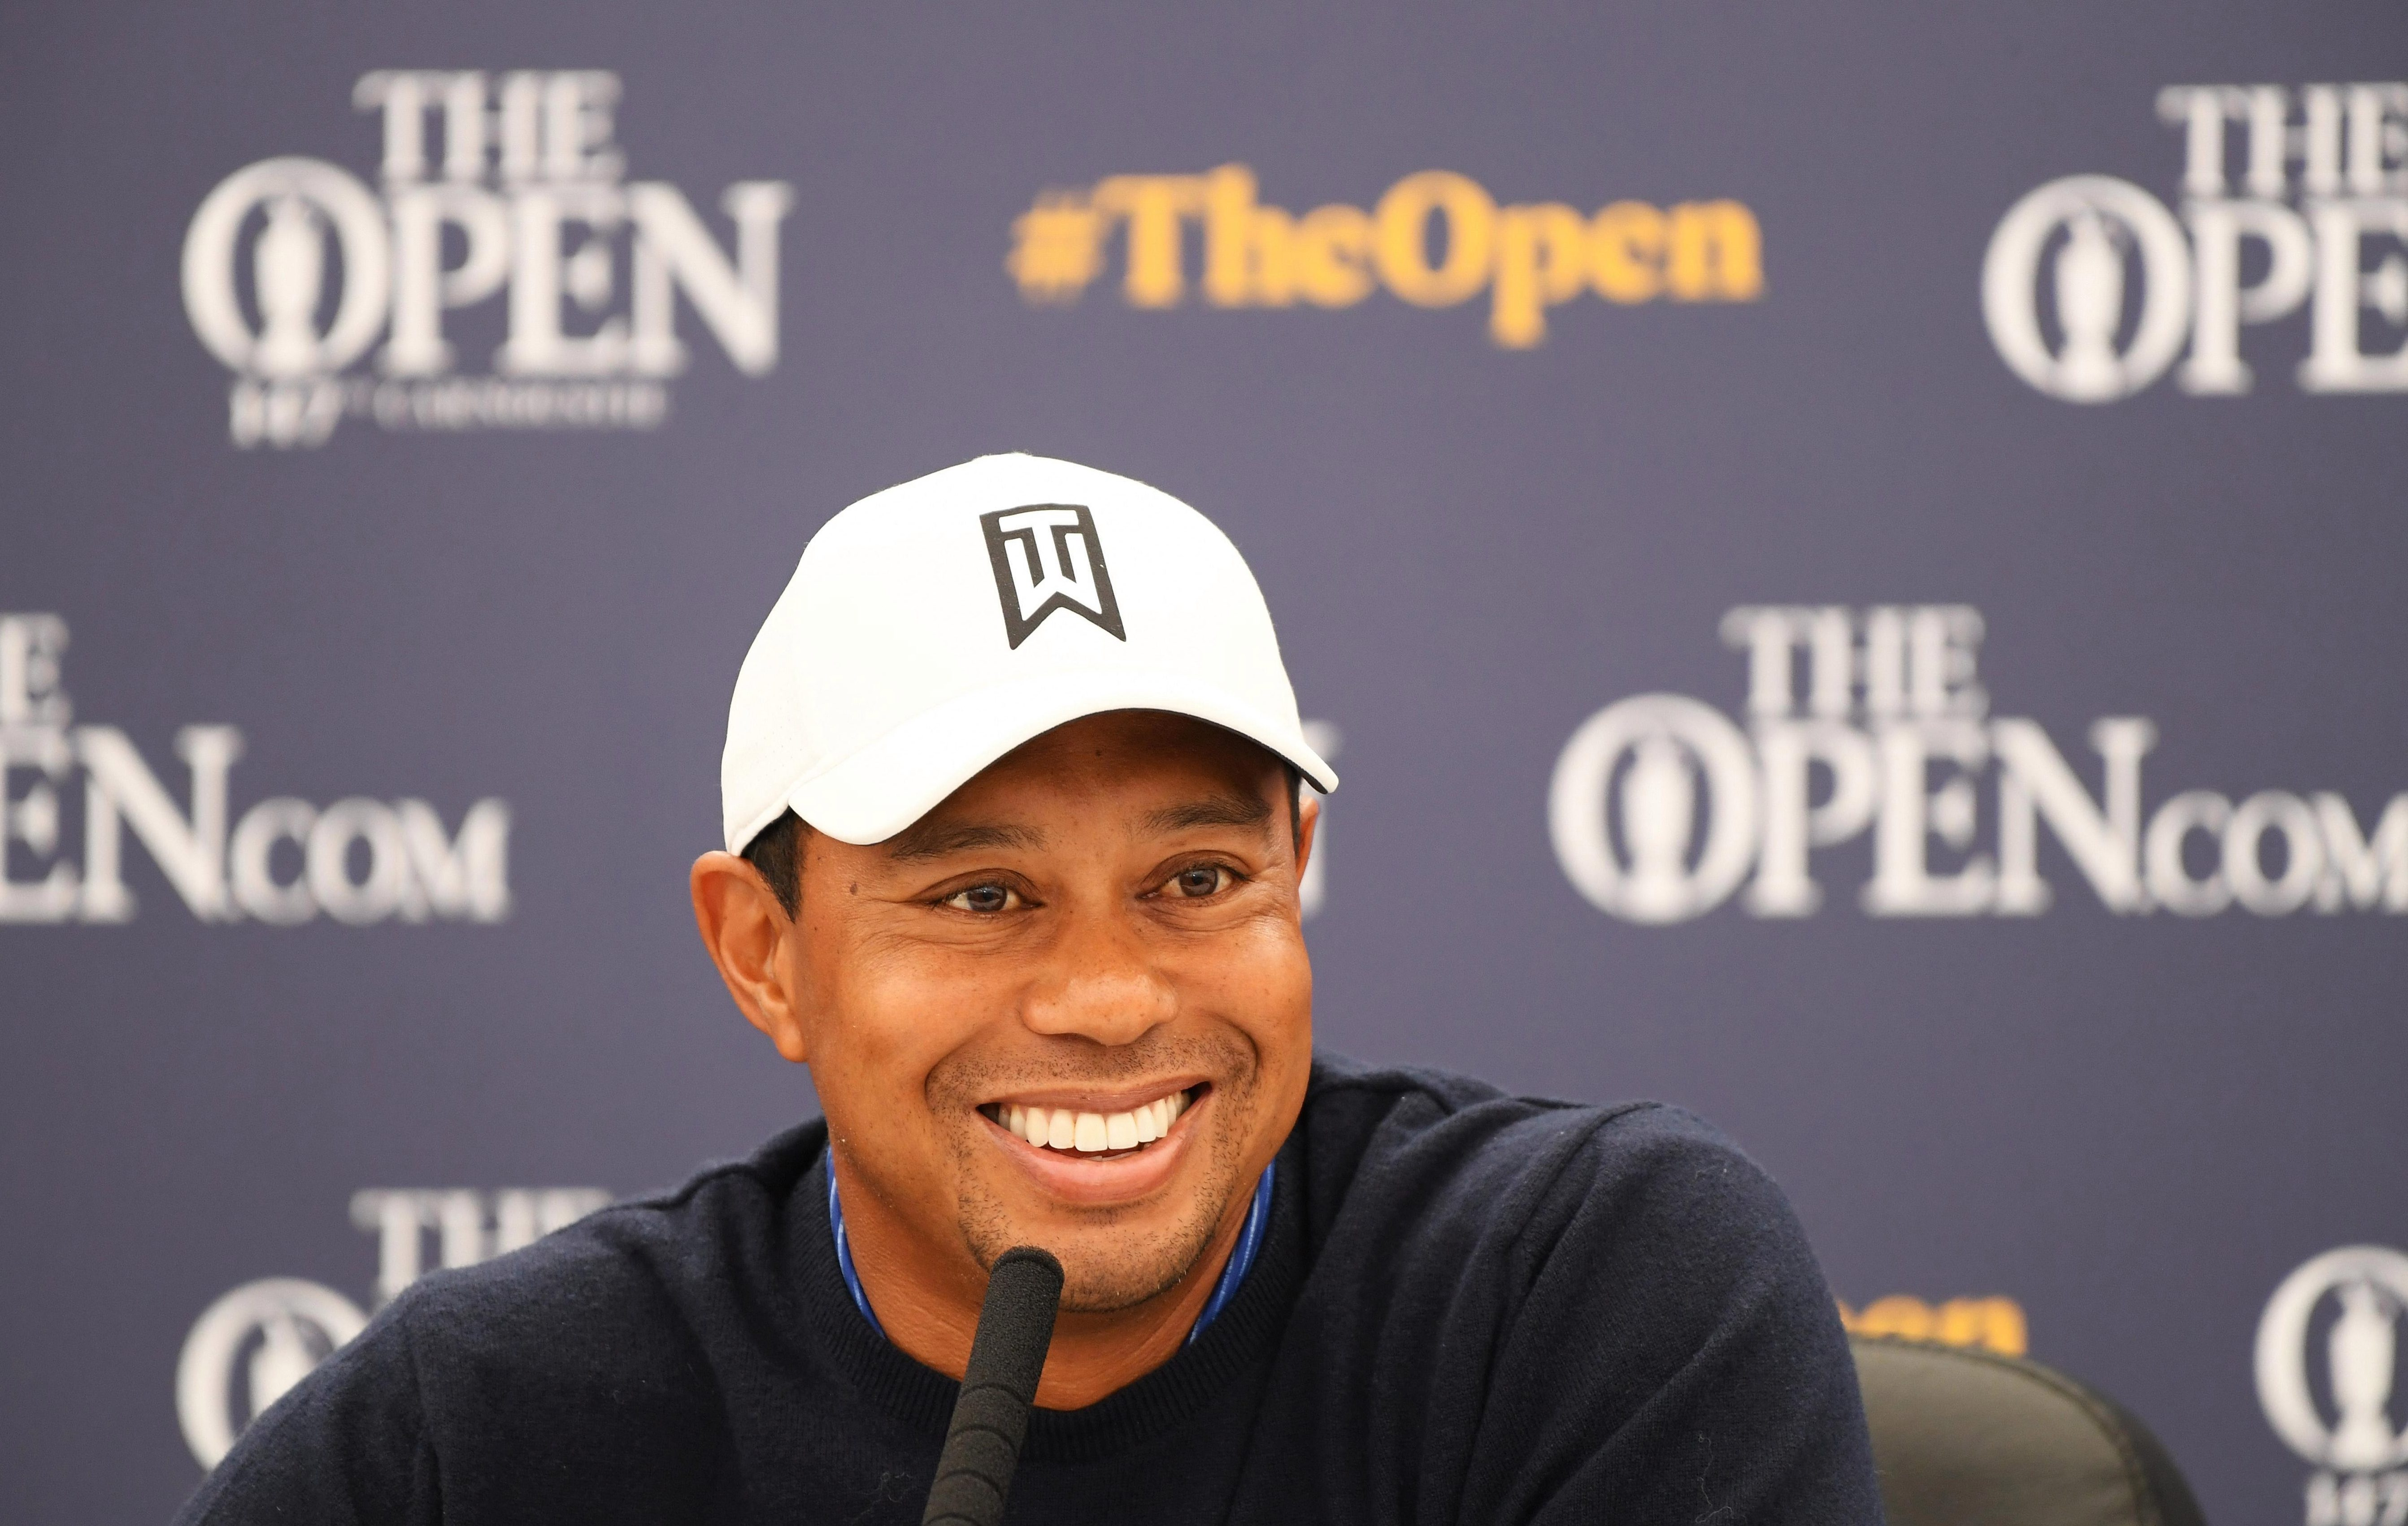 Tiger Woods winning the Open will mean a record payout for bookies